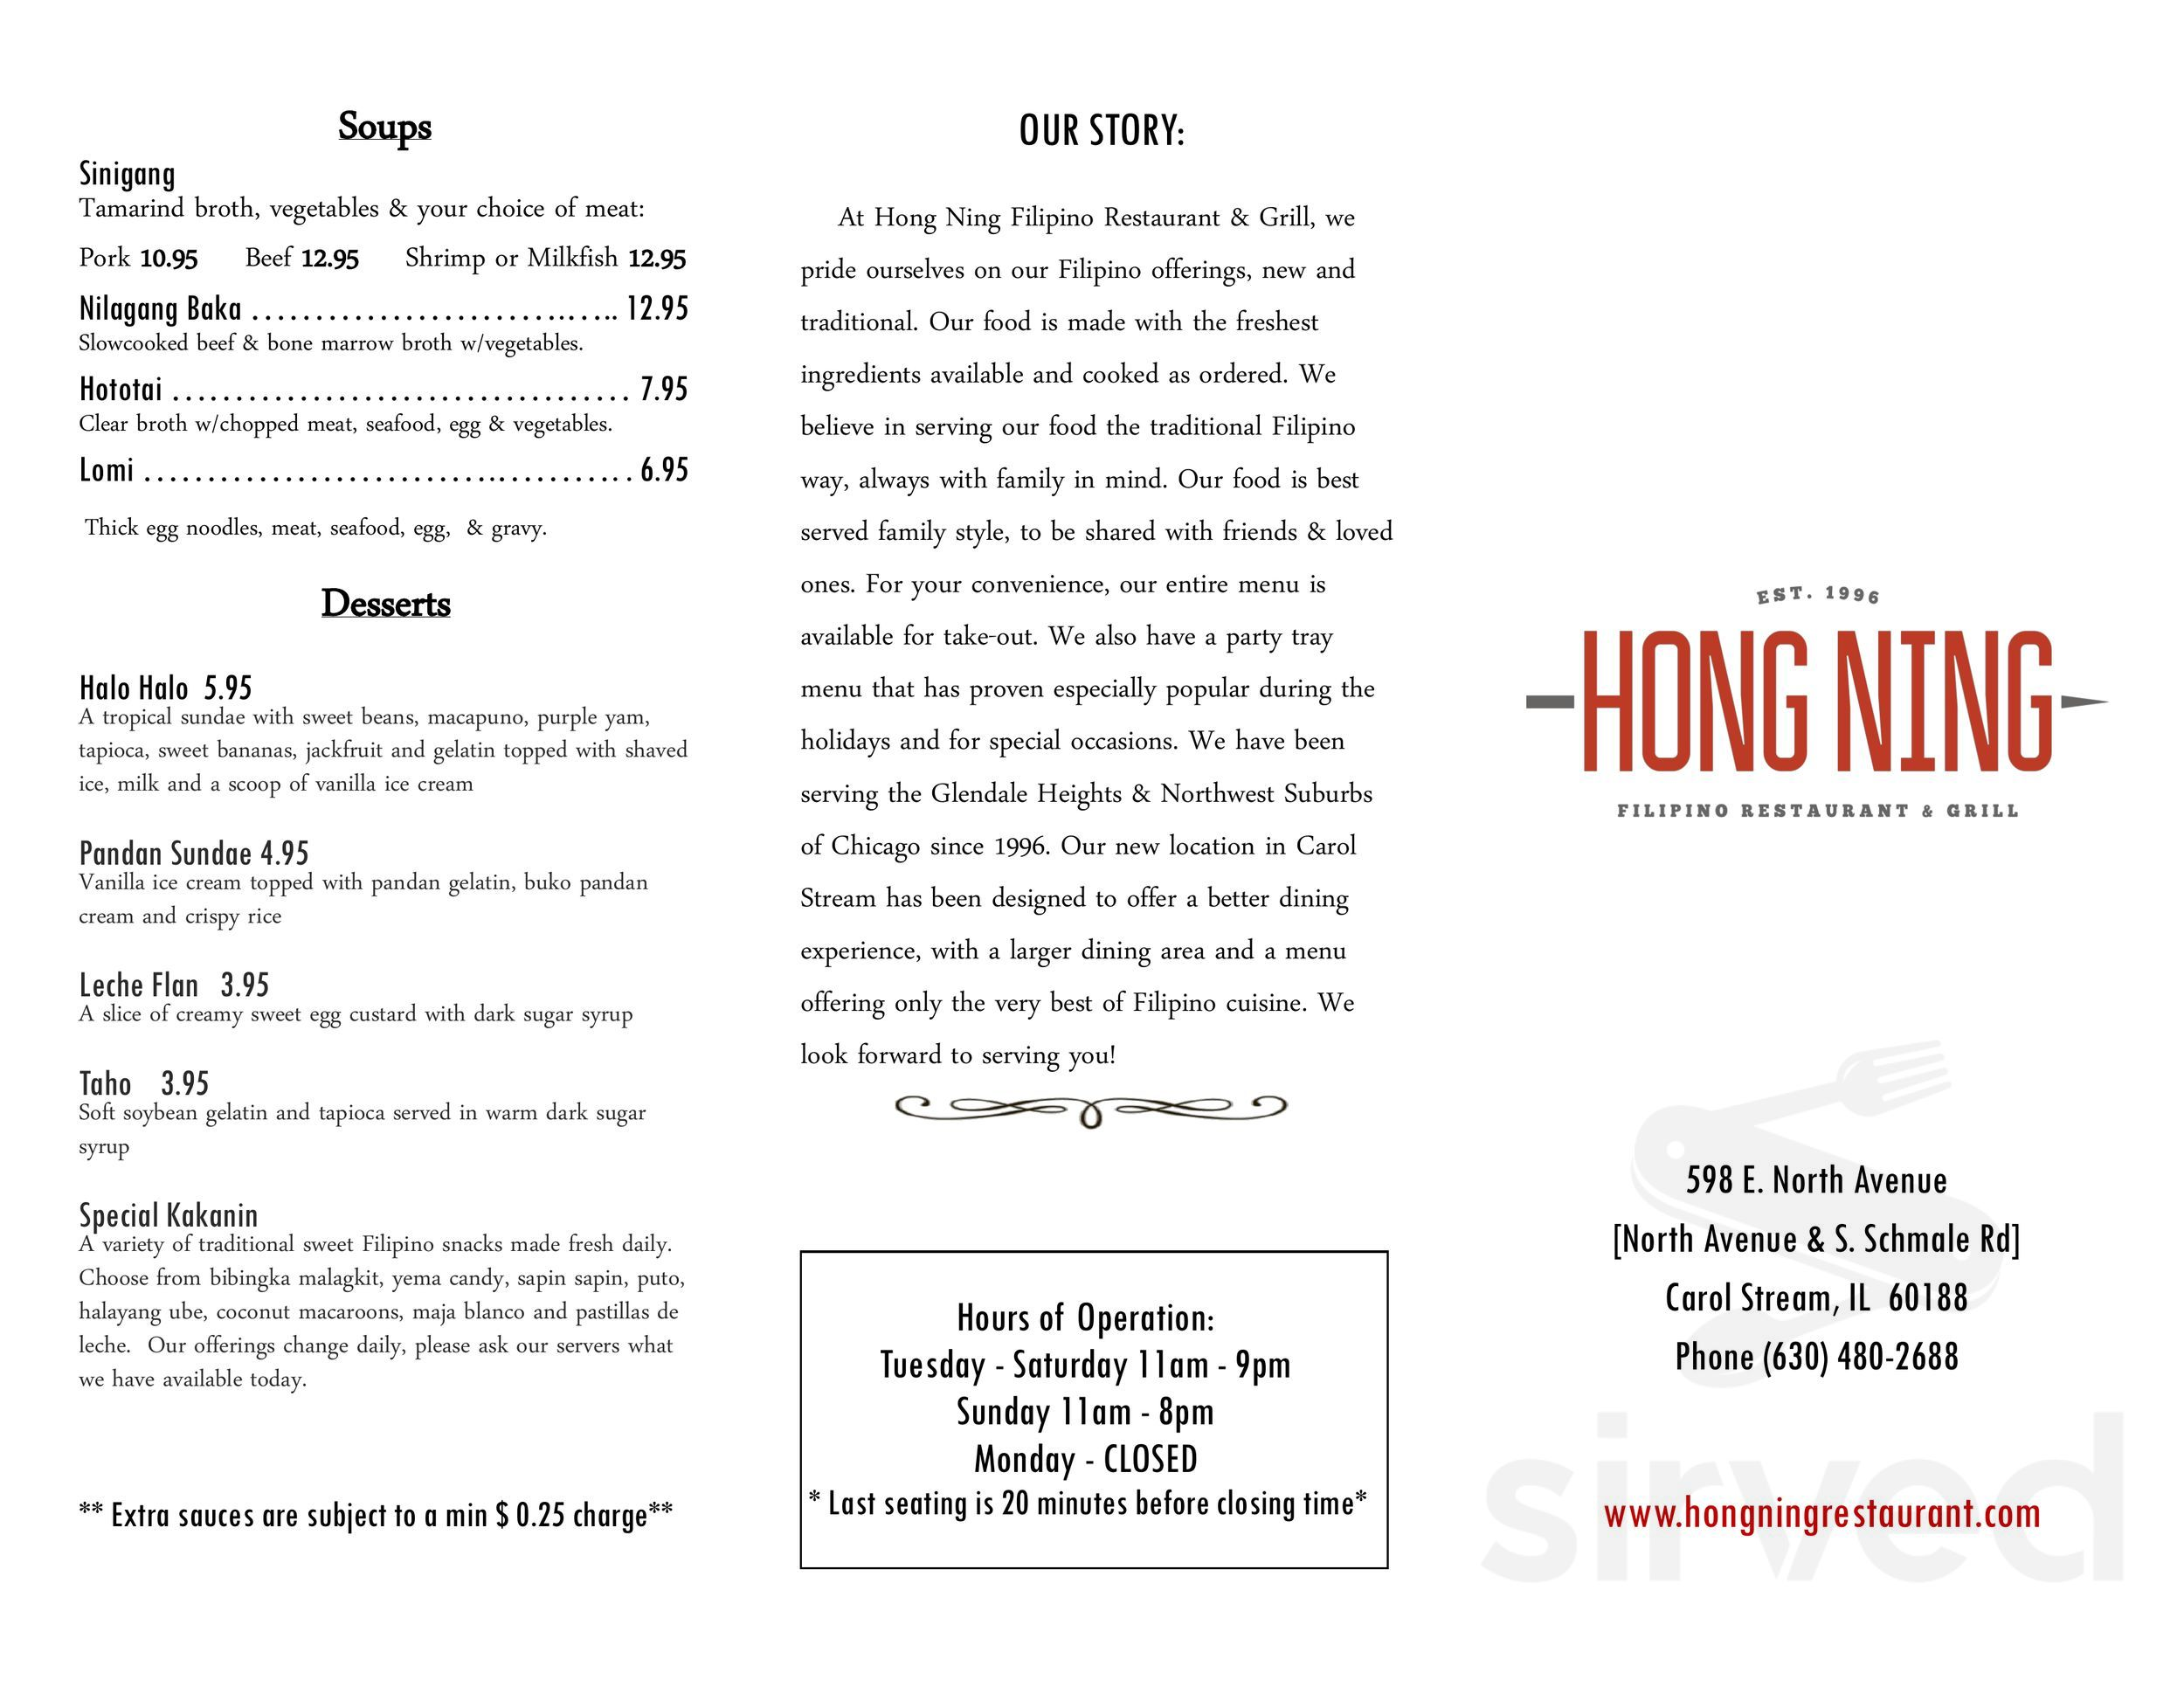 Menu For Hong Ning Filipino Restaurant Grill In Carol